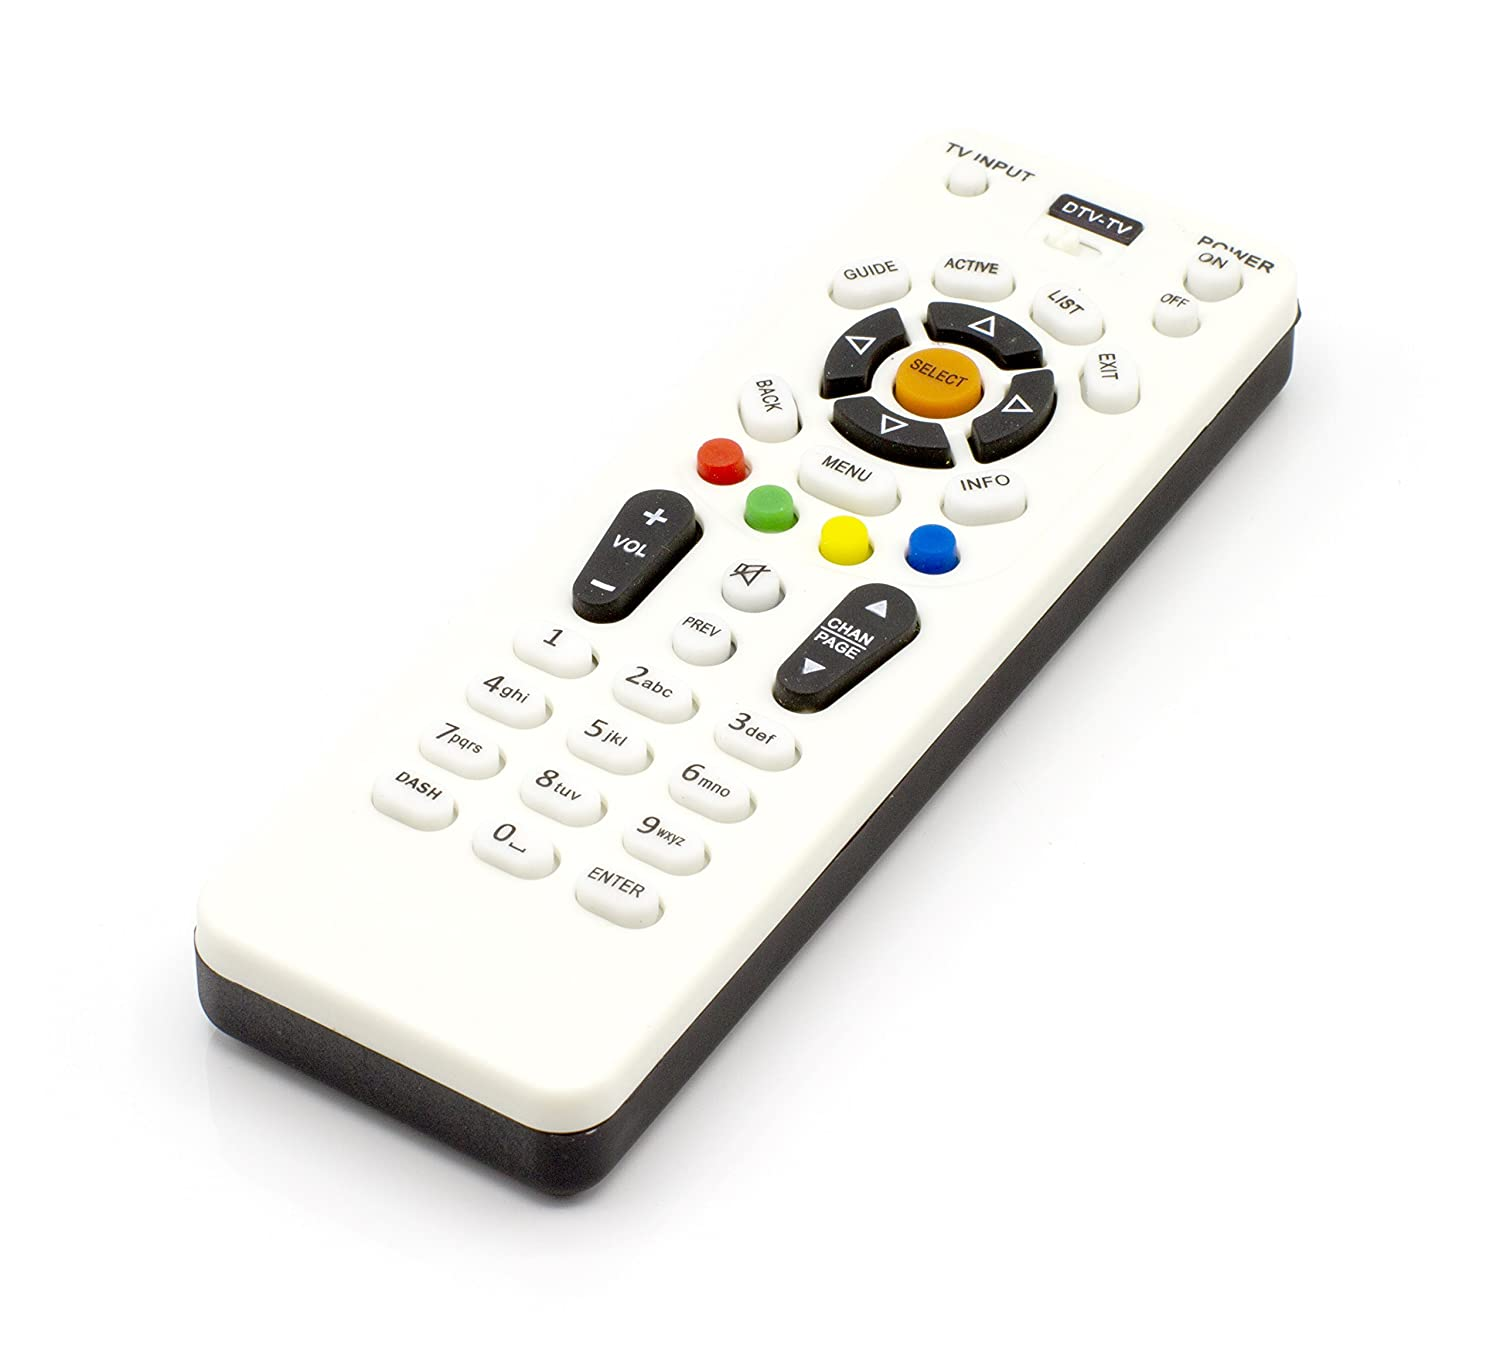 Amazon.com: THE CIMPLE CO Simplified Remote Control with Extra-Long ...